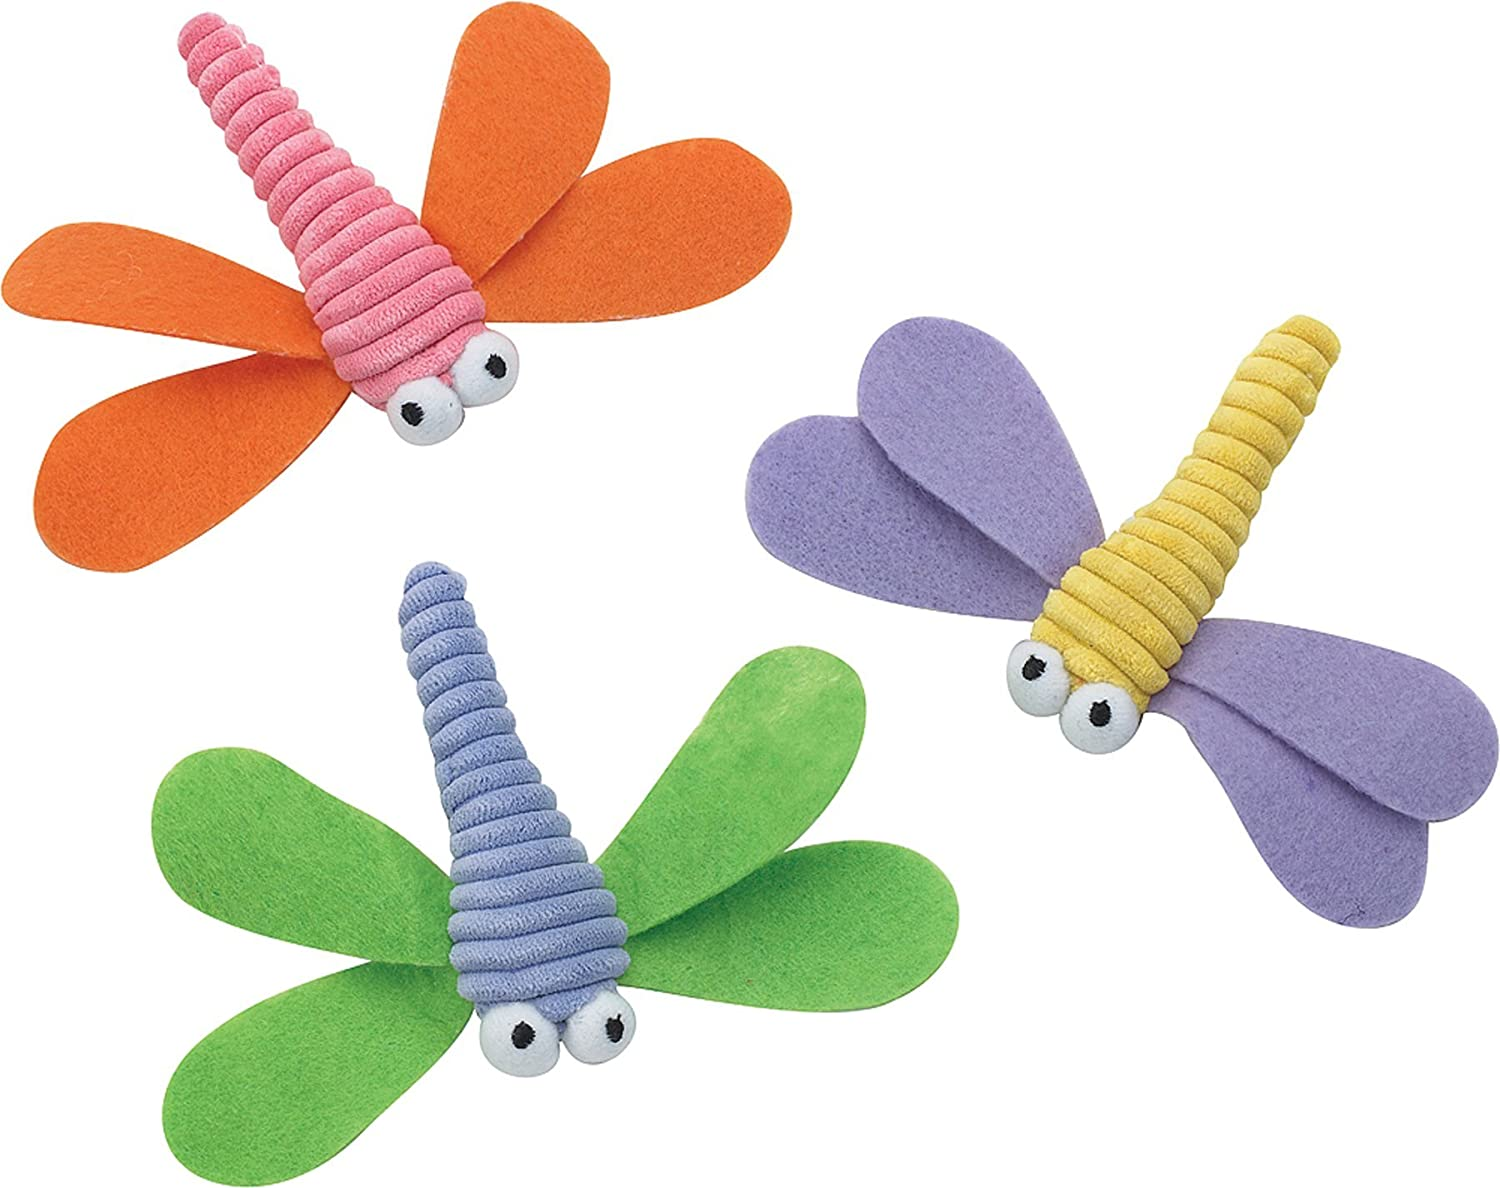 Ethical Pet Products (Spot) CSO2813 Corduroy Dragonfly Catnip Toy for Cats, Assorted high-quality